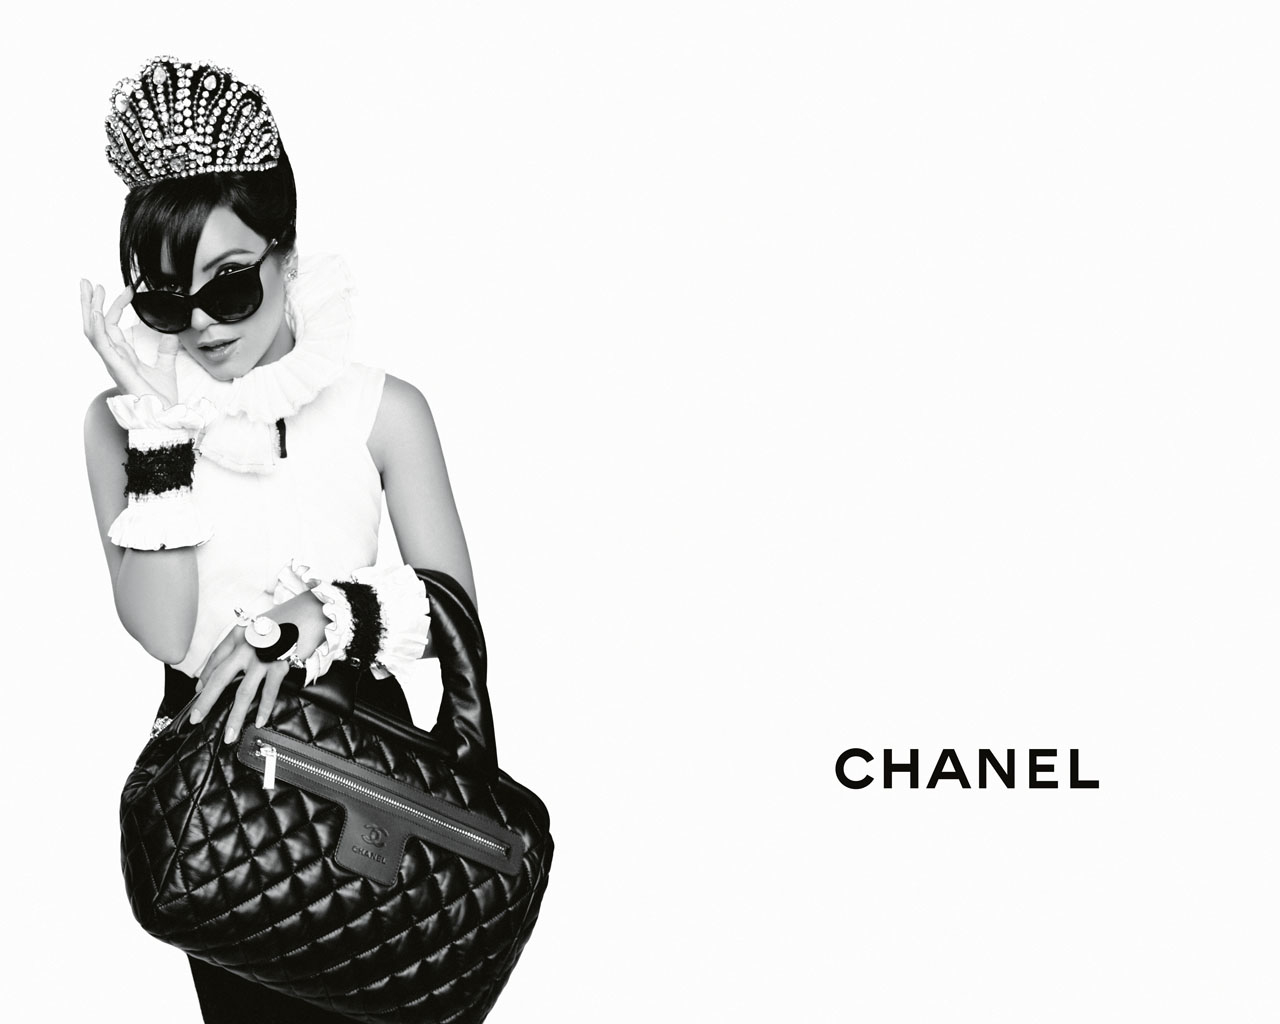 http://3.bp.blogspot.com/_HdrBExAGHPQ/TMs02cSpa1I/AAAAAAAAMQg/ZupnerJvL1o/s1600/chanel-coco-cocoon-lily-allen-advertising-campaign-by-karl-lagerfeld-011.jpg